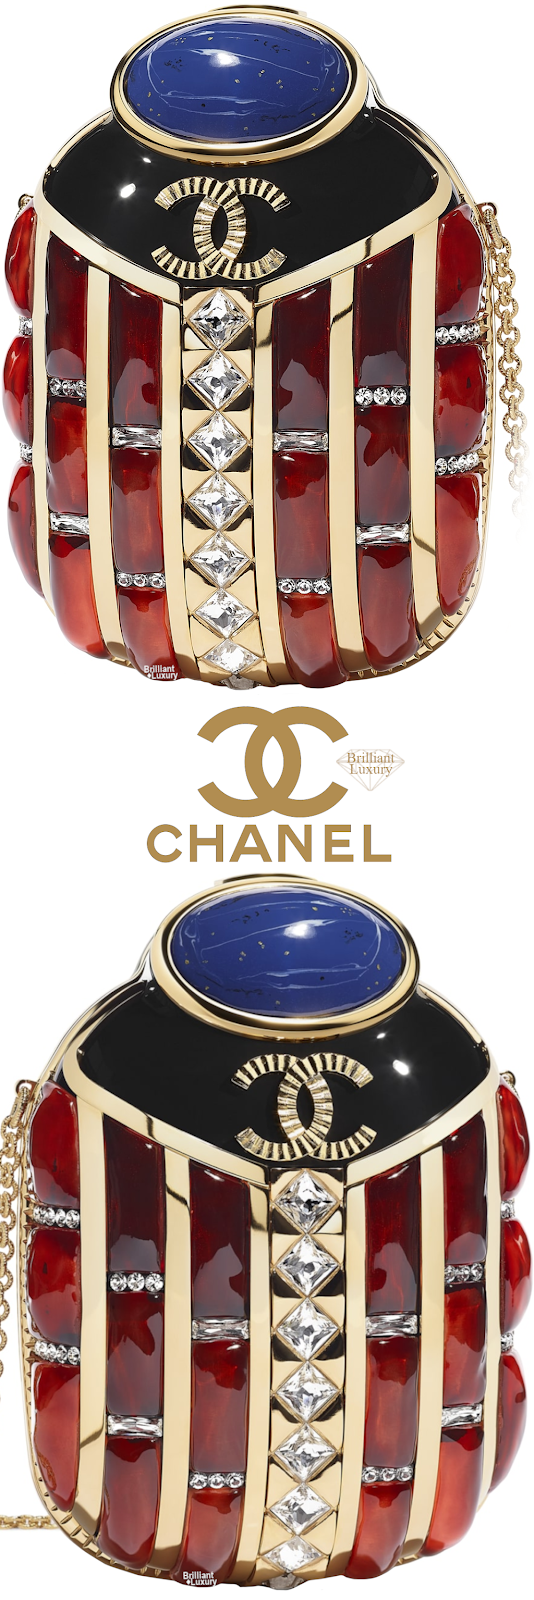 Brilliant Luxury♦Chanel Resing Strass Evening Bag in Gold, Black, Red